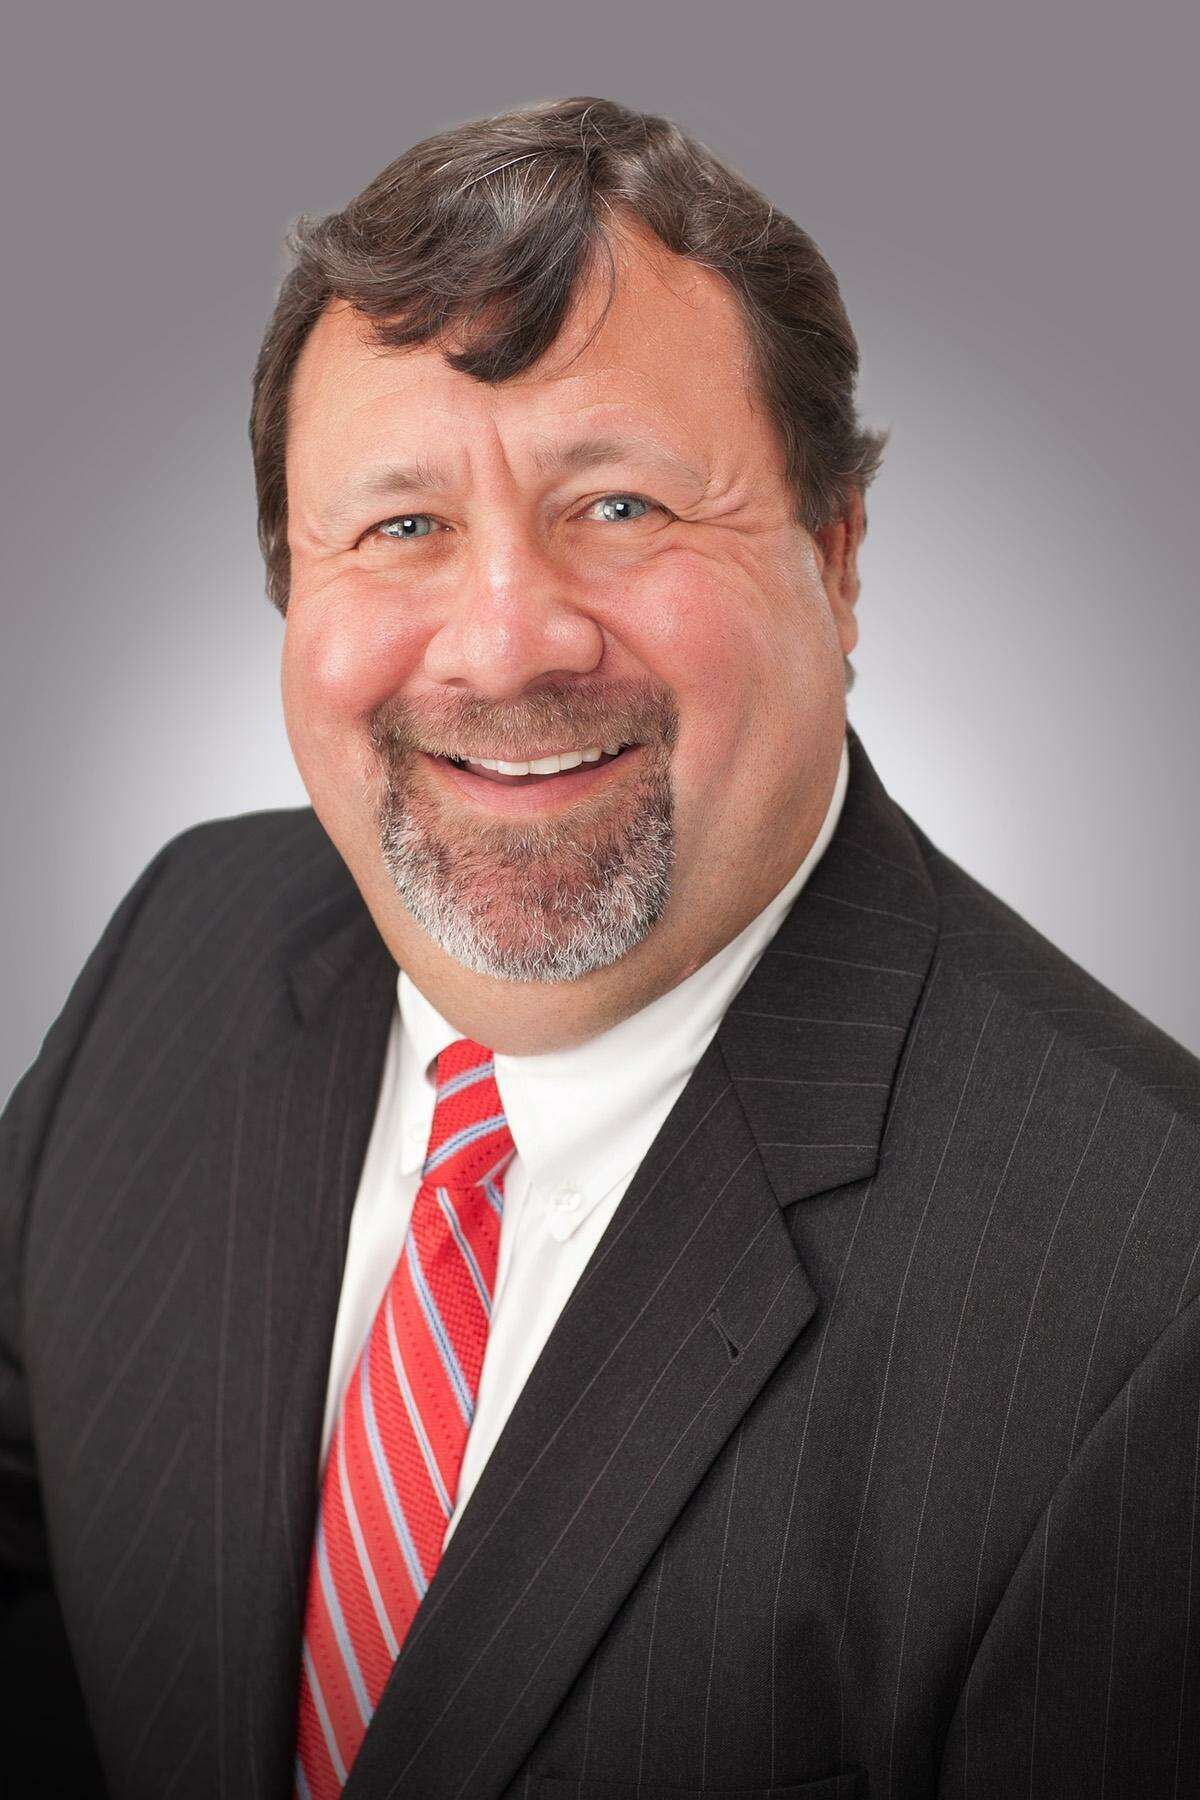 John P. Cahill Jr., Lanza Law Firm, has joined the civil trial law firm as a partner where he concentrates his practice on construction disputes.